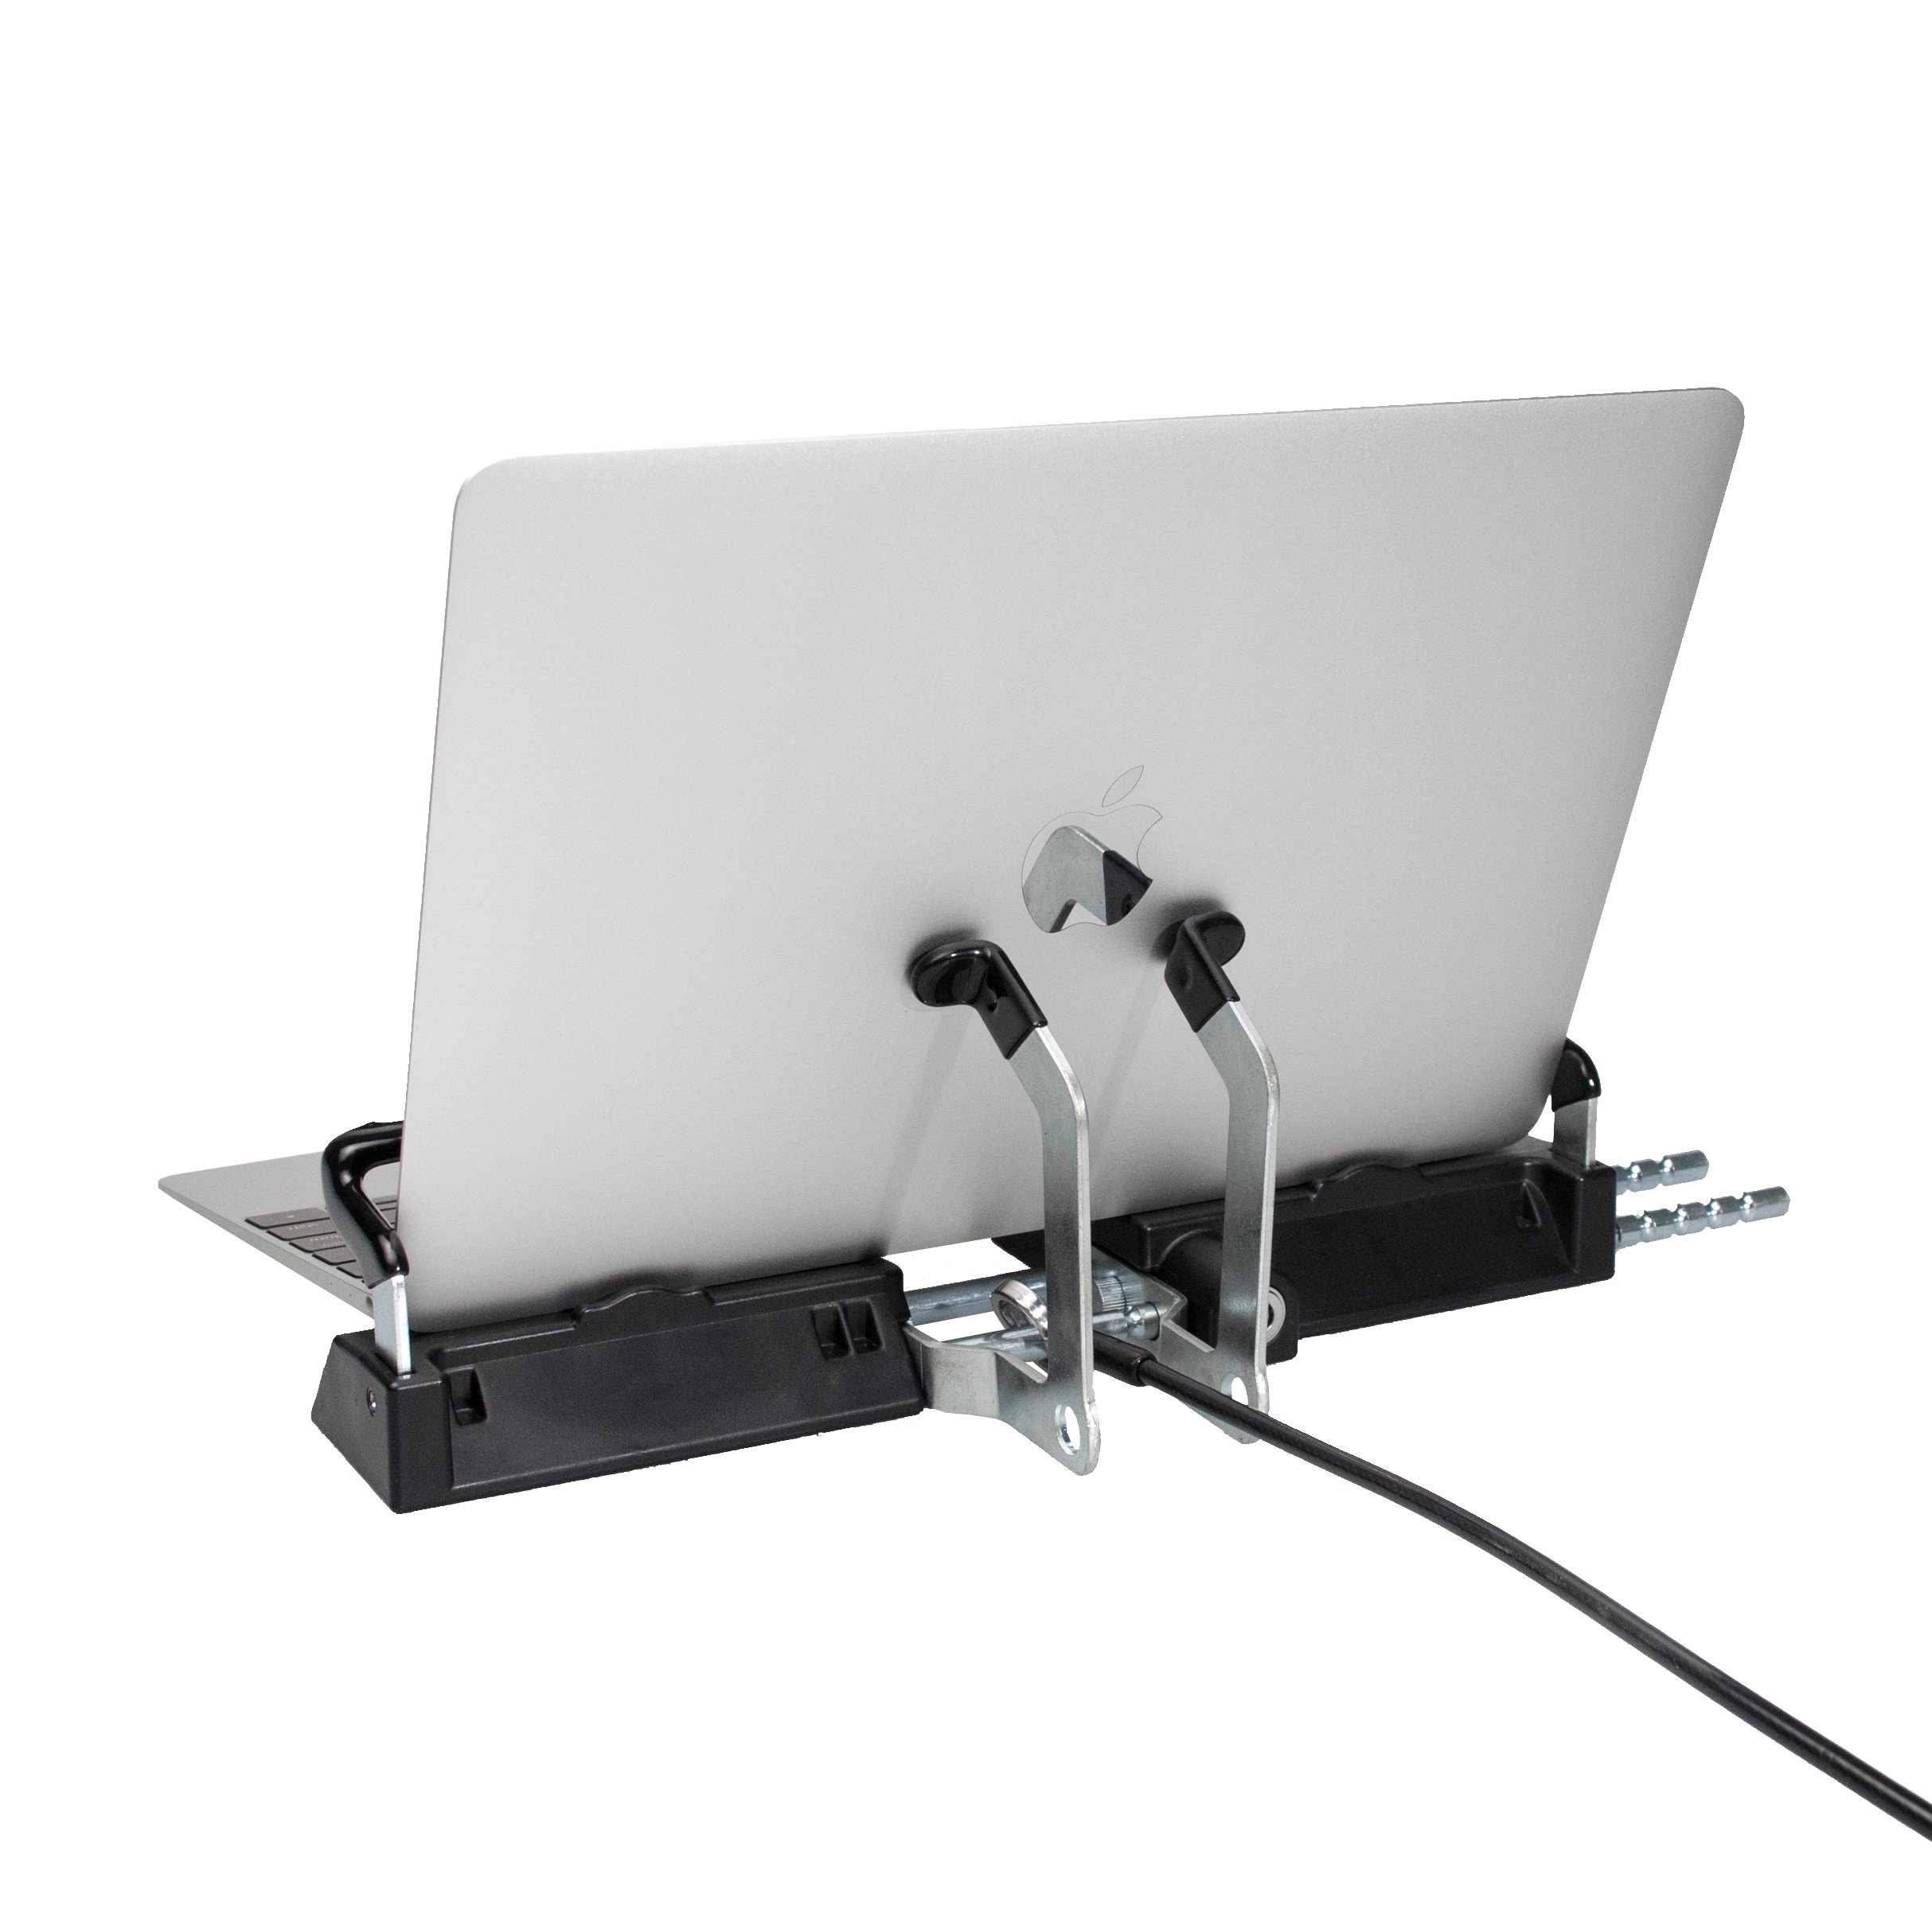 CTA Digital Heavy Duty Tri-Security Station for Tablet-Laptop Hybrids - PAD-SSLT